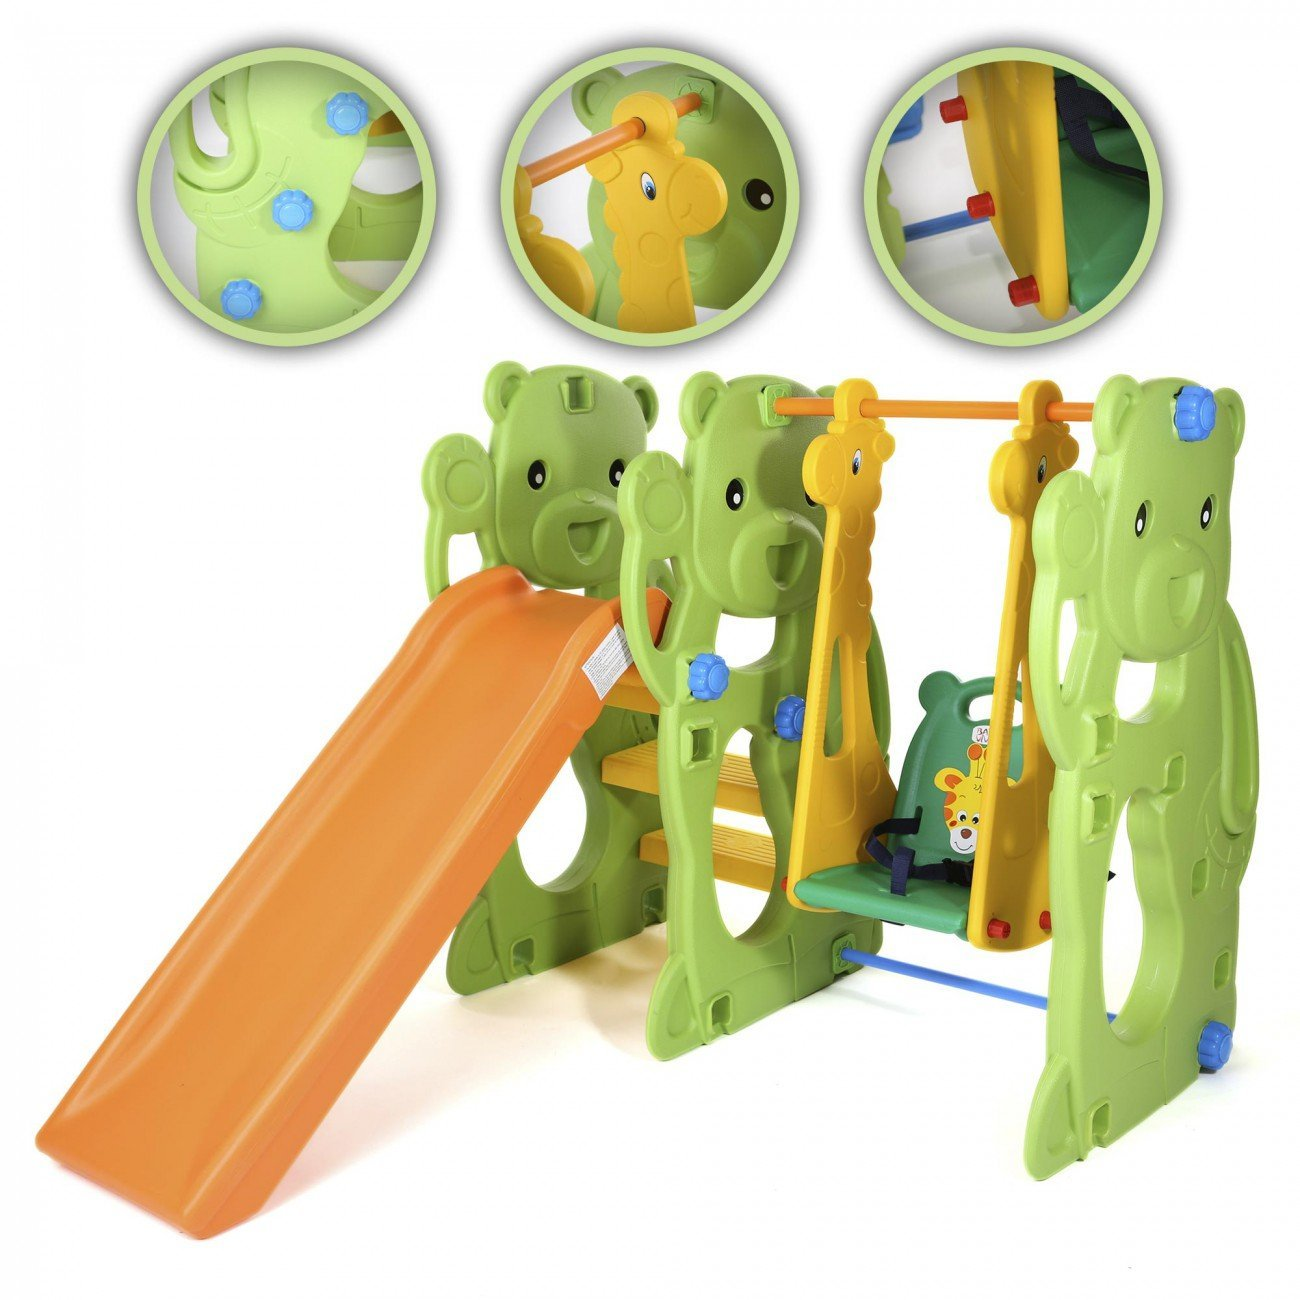 Construction Toys For 2 Year Olds : Intey magnetic building blocks pcs